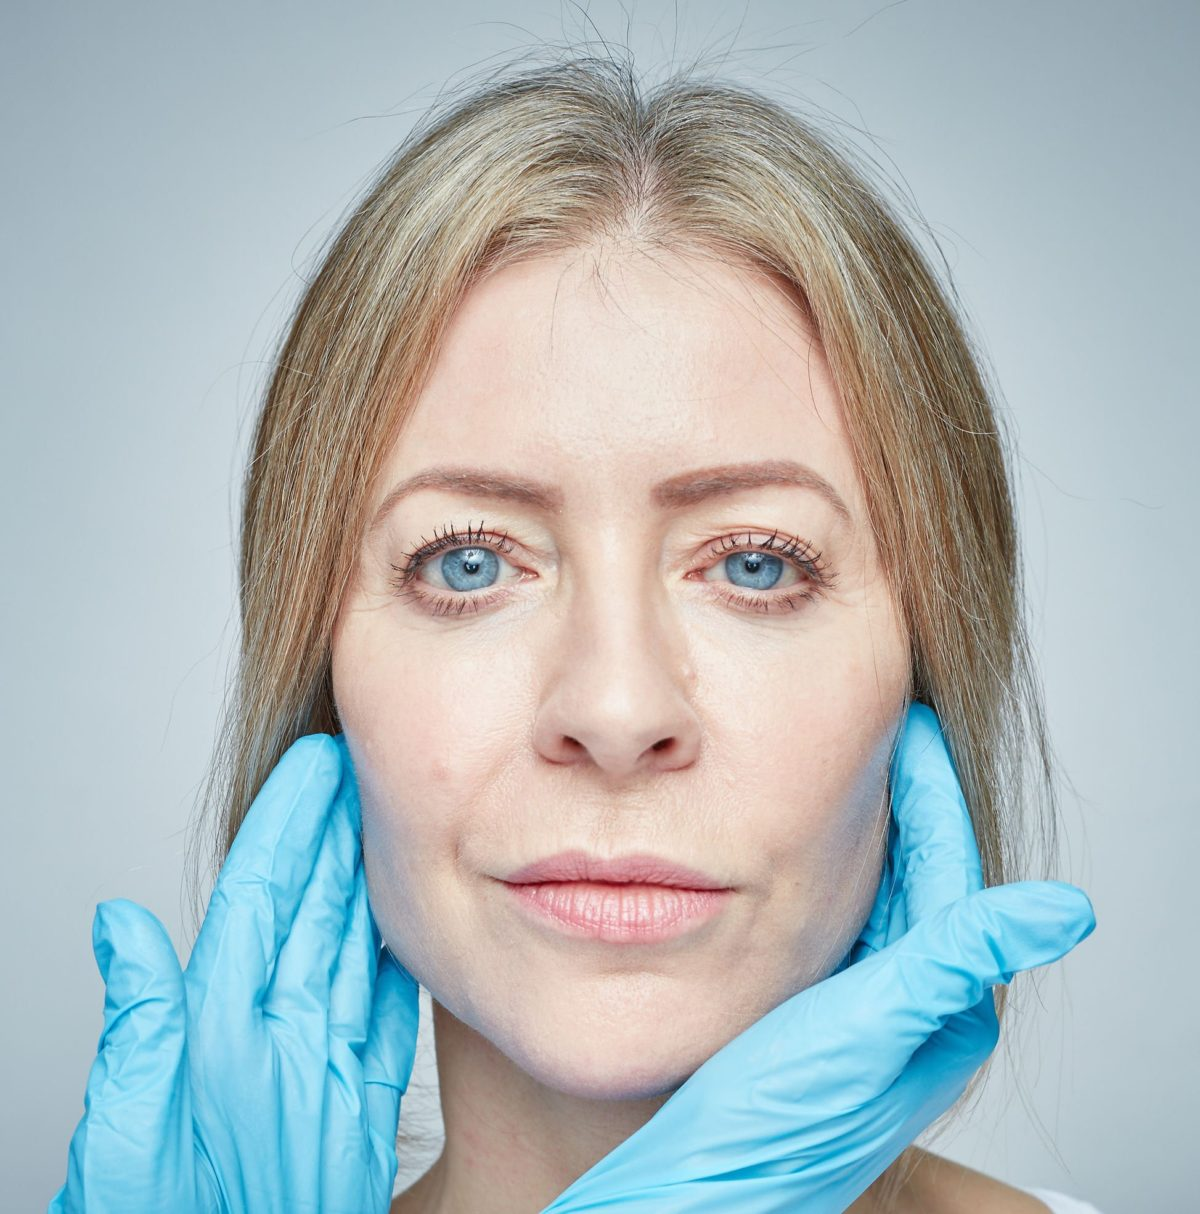 What does Botox feel like when it starts to work?